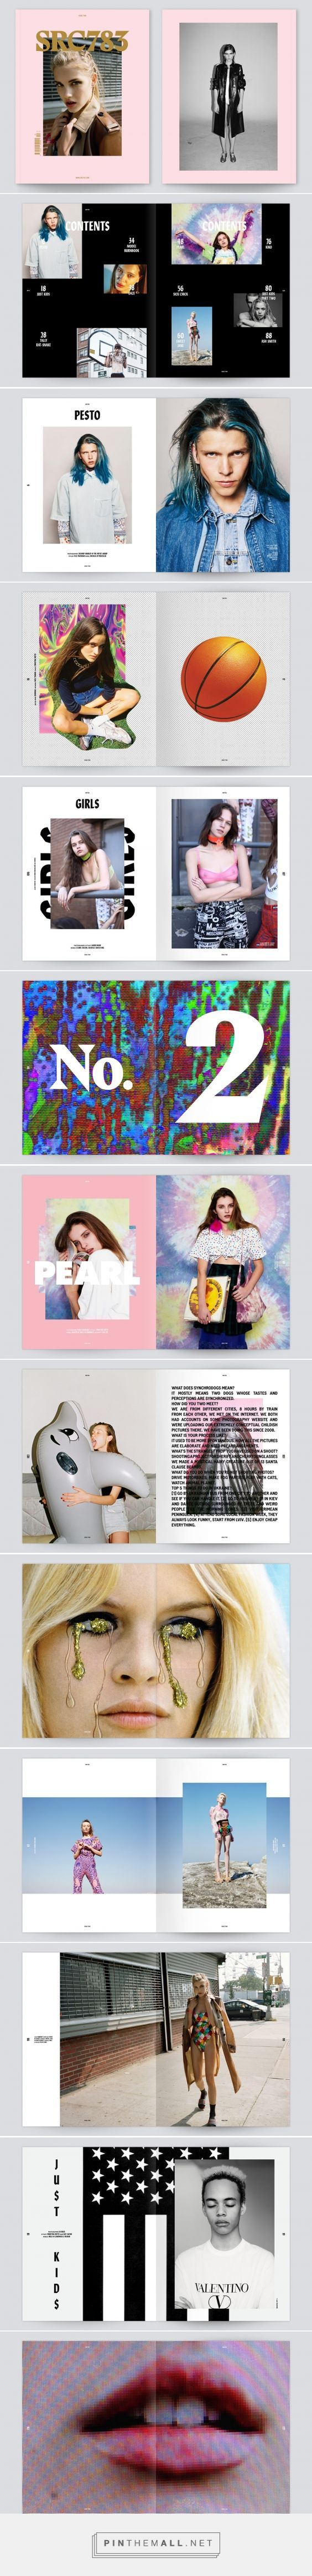 SRC783 Issue Two - Magazine Publishing & Website - The Drop: